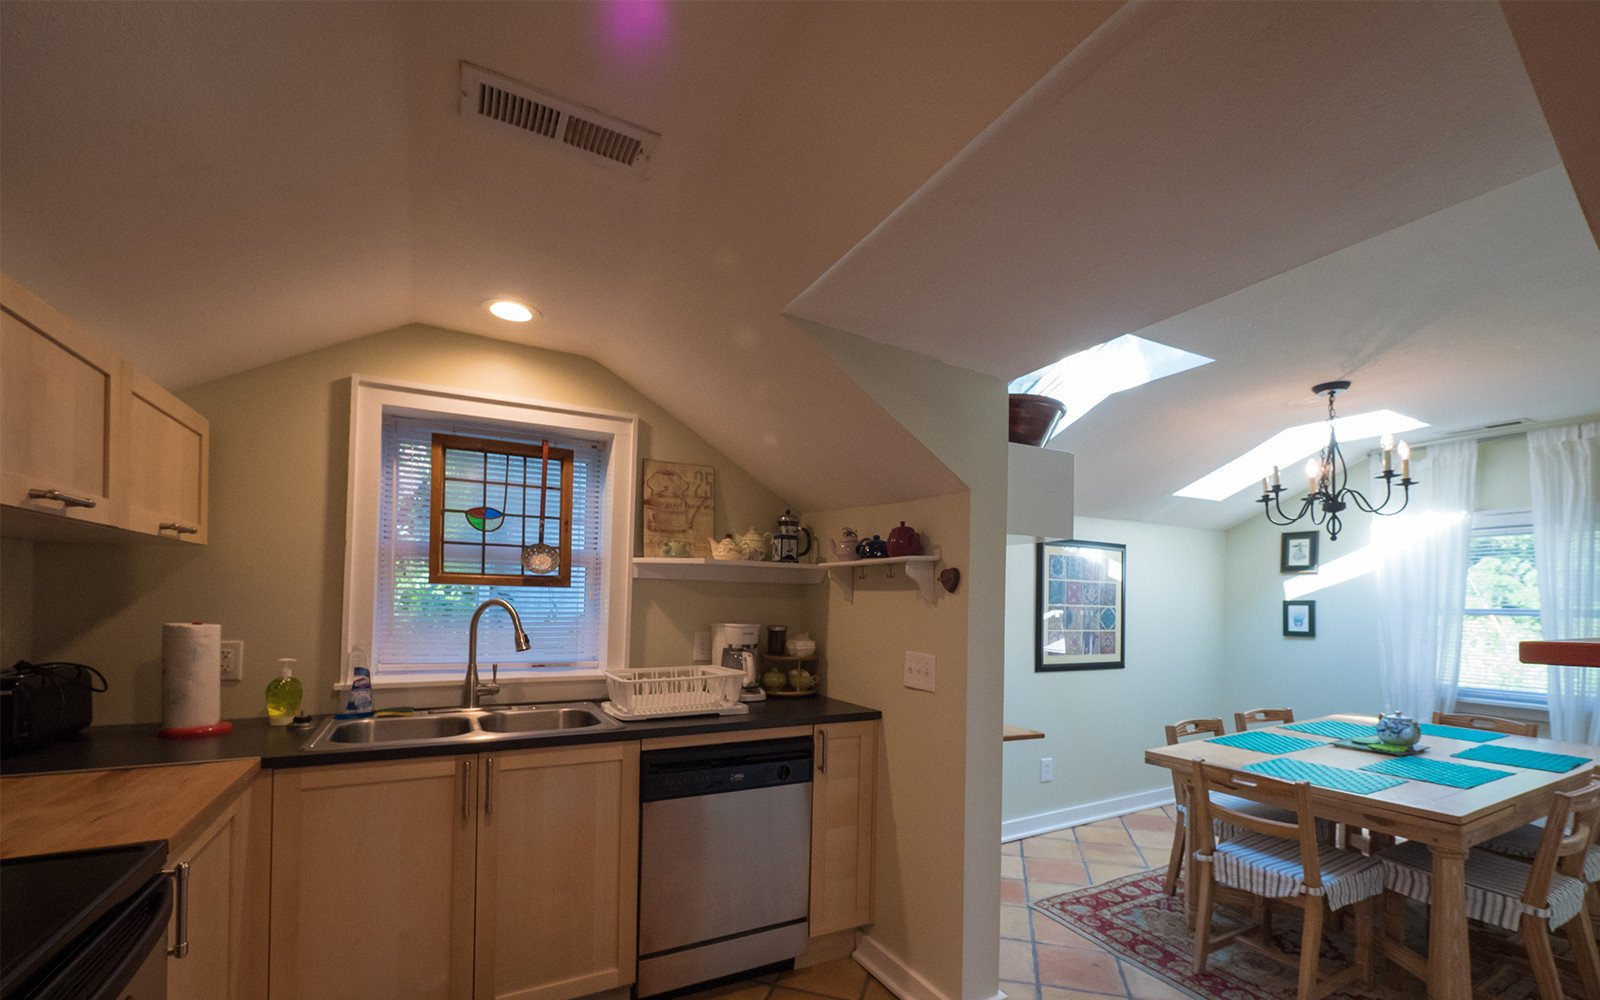 Bungalow-kitchen-and-dining-room